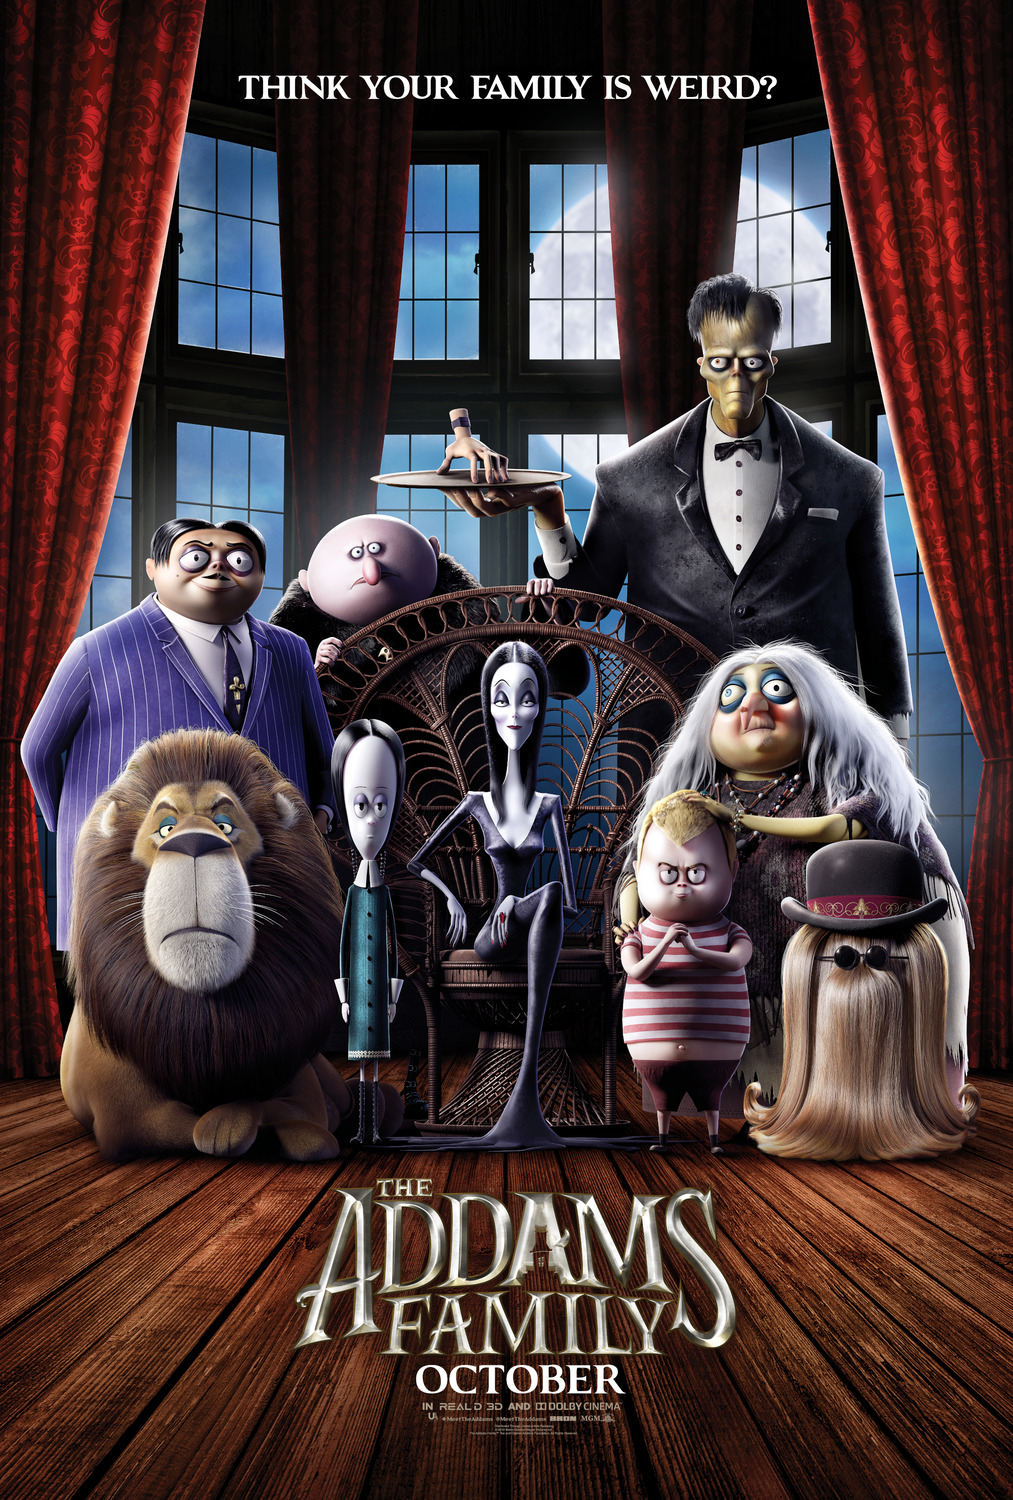 The Addams Family (2019 film)